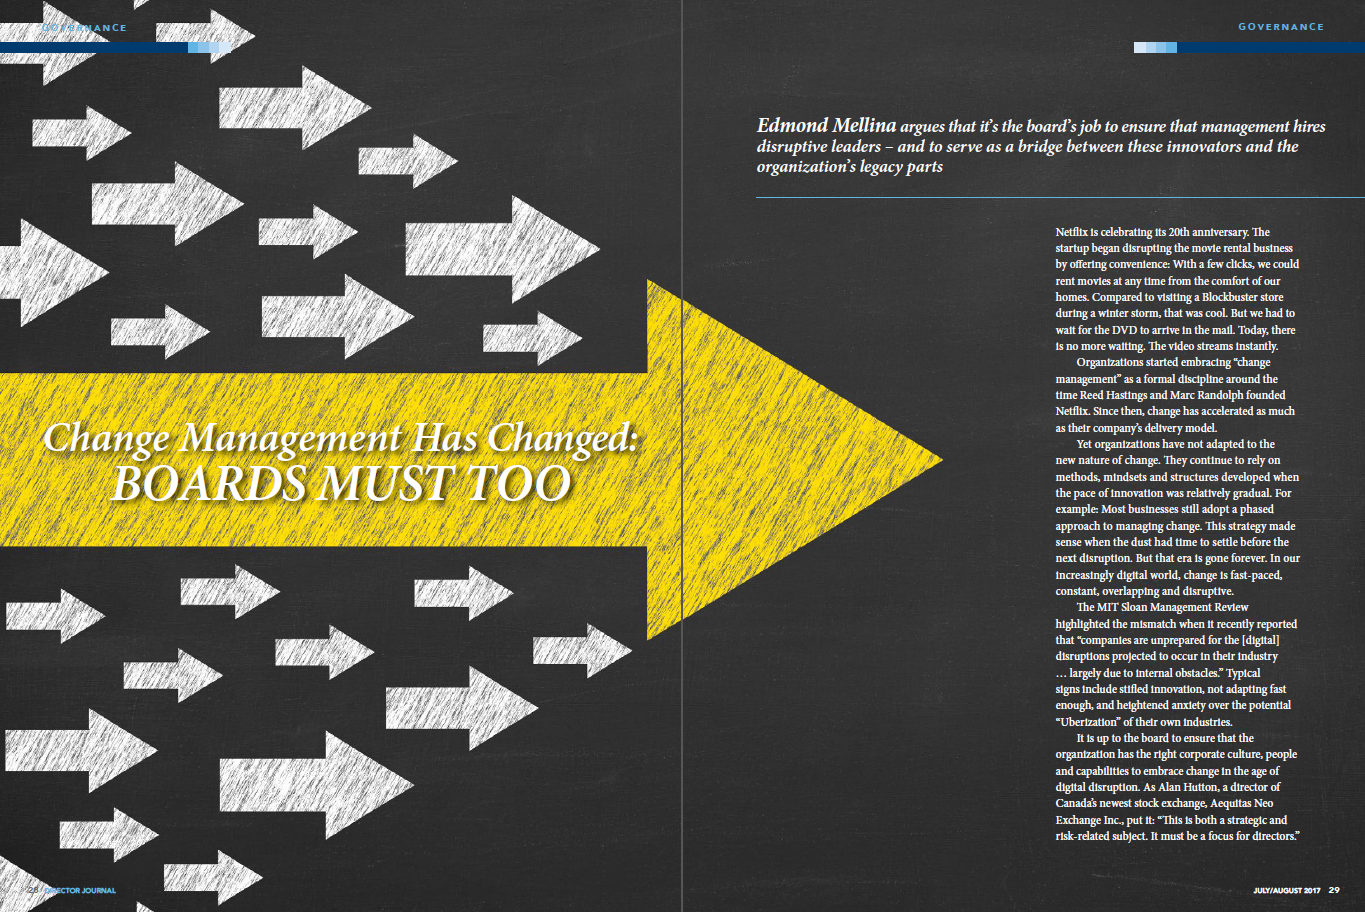 Change Management Has Changed, BOARDS MUST TOO